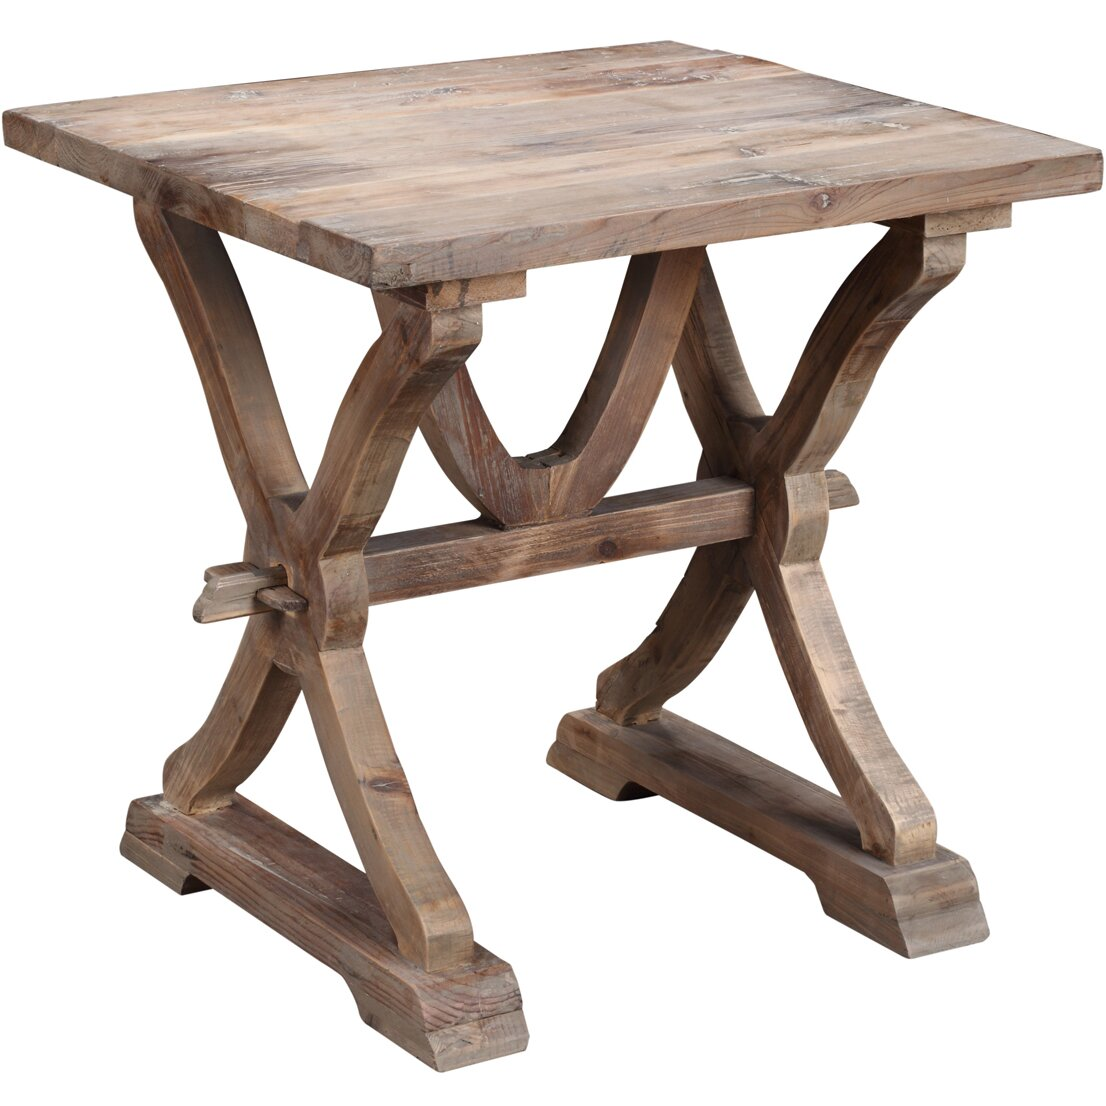 Colette Reclaimed Wood End Table - Colette Reclaimed Wood End Table & Reviews Joss & Main